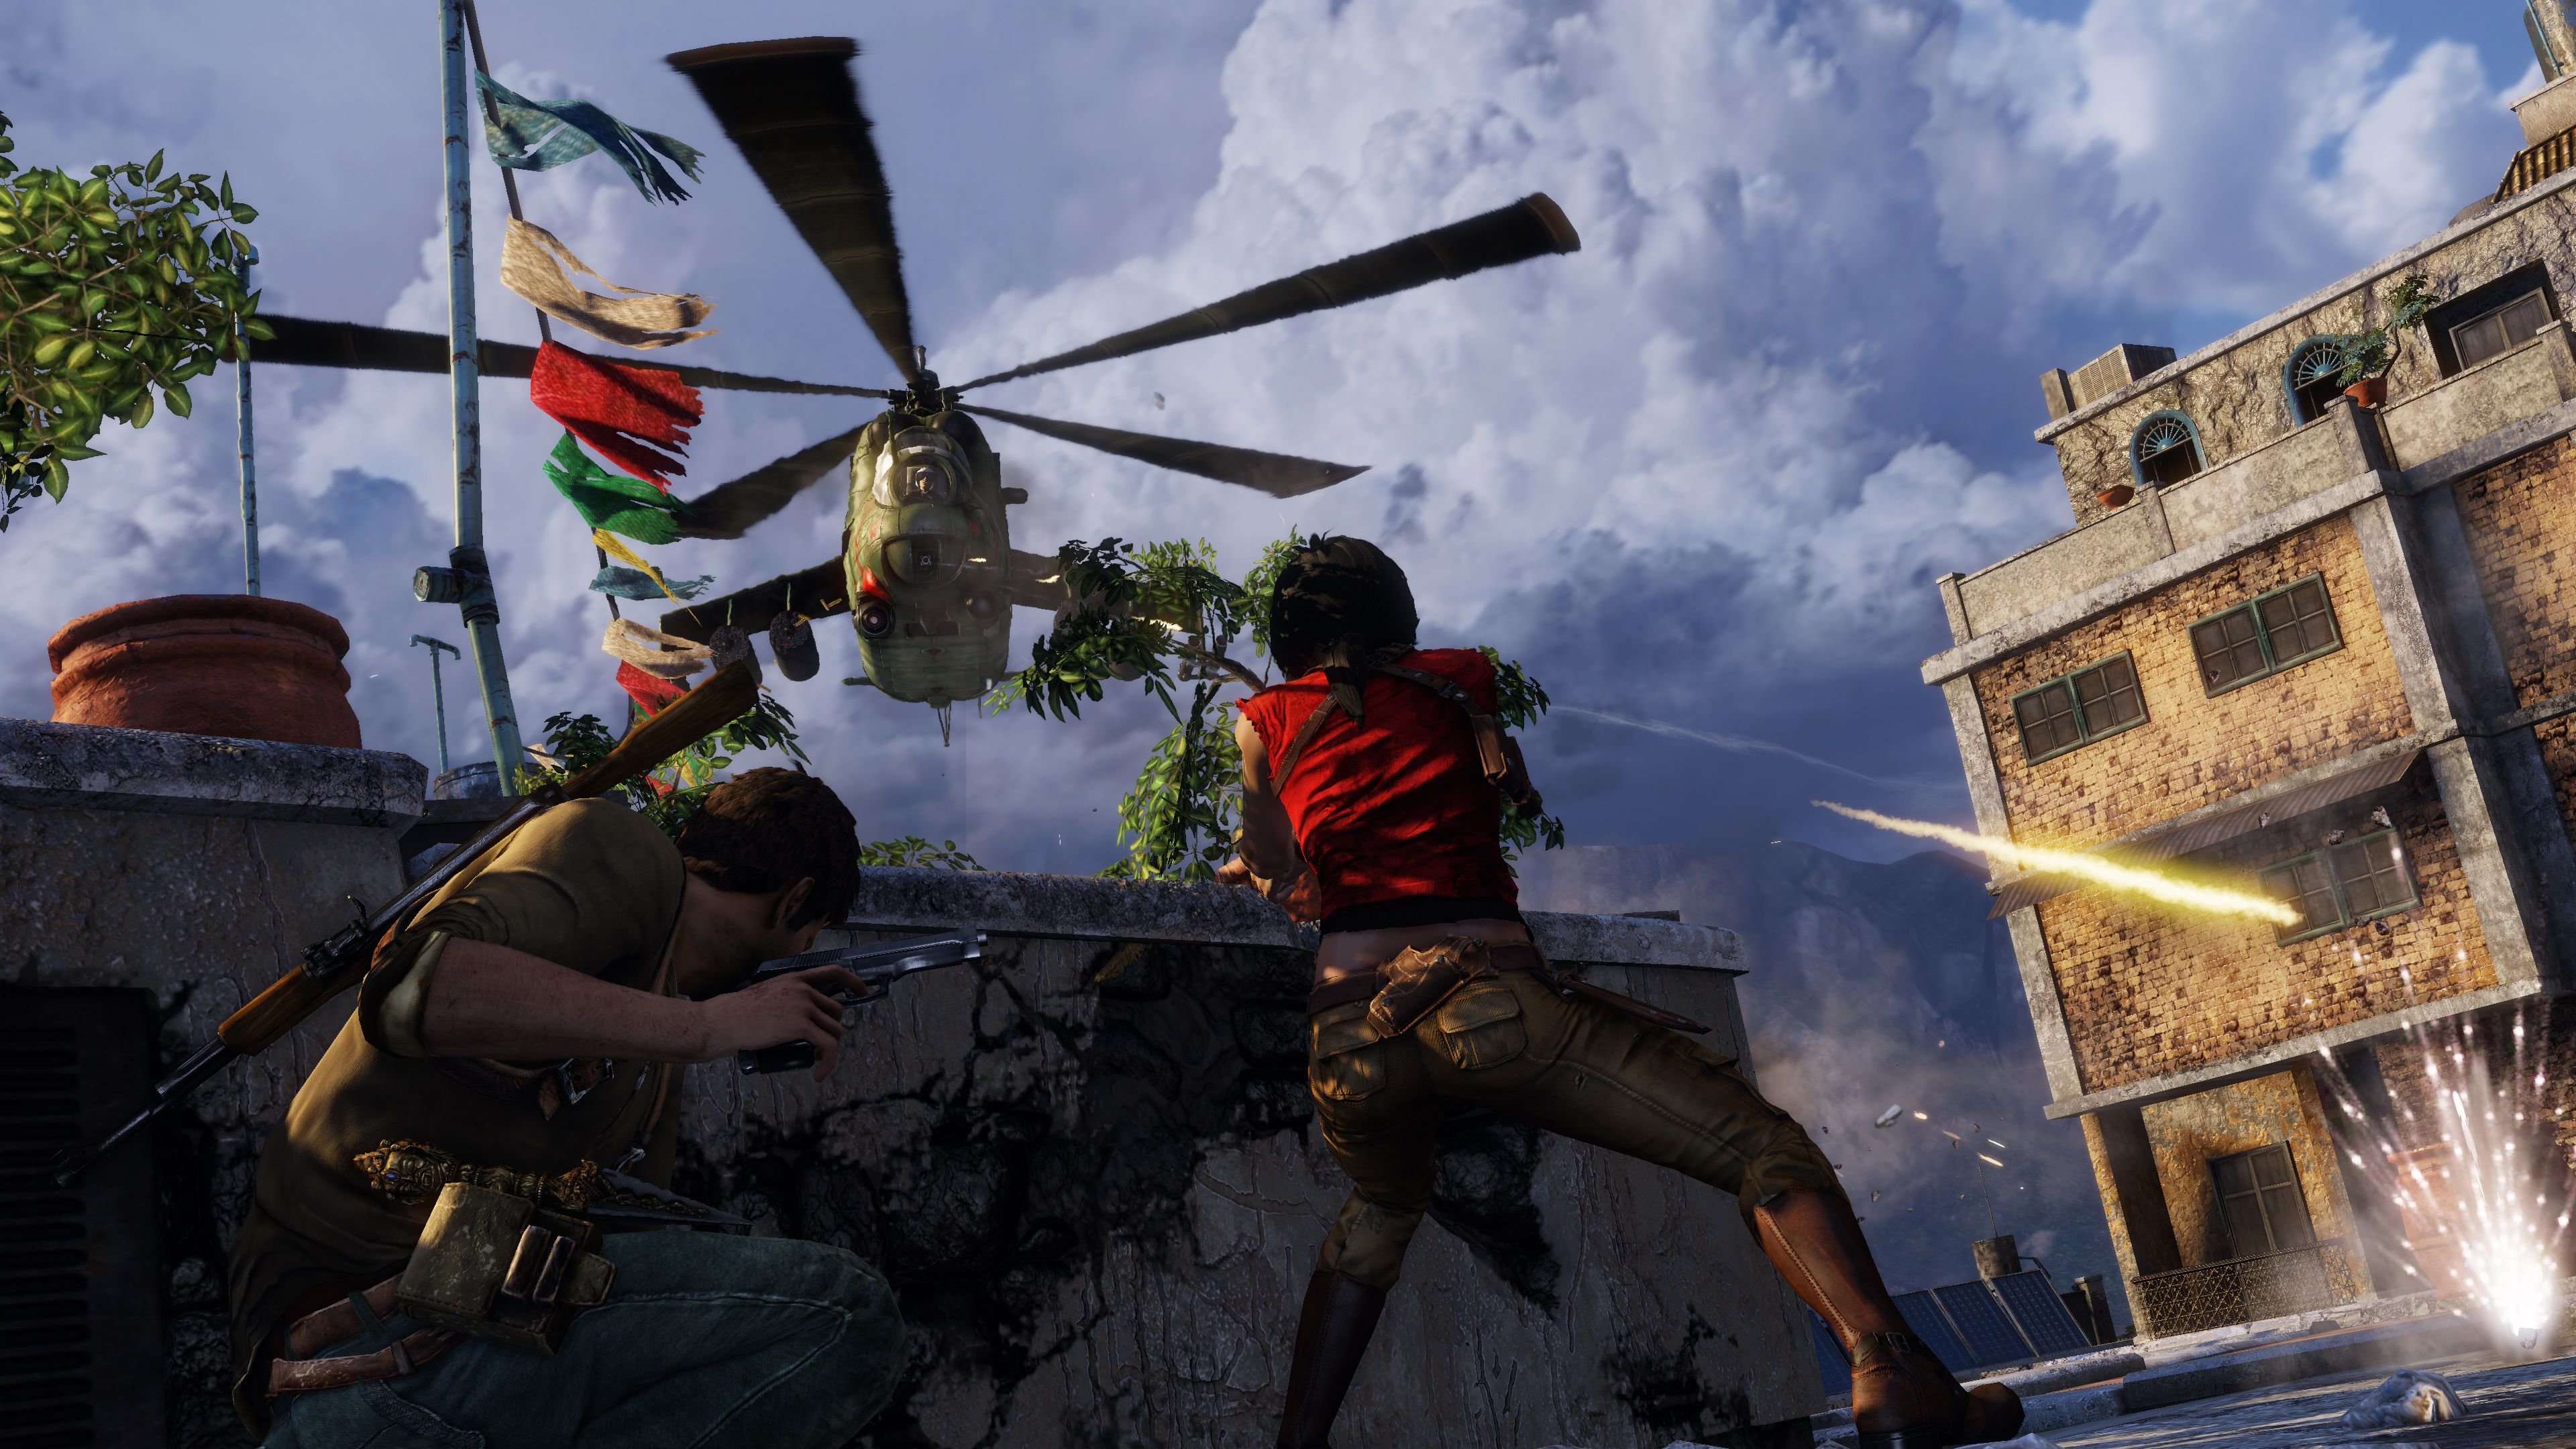 ps3 helicopter game with Uncharted Nathan Drake Collection Demo Rolling Ps Stores 69gb Goodness on Saints Row Cheats All Games 414698 together with Xbox 360 Cheat Codes likewise Grand Theft Auto The Ballad Of Gay Tony Pc Game additionally Watch additionally Ps3 Wallpaper 1080p.